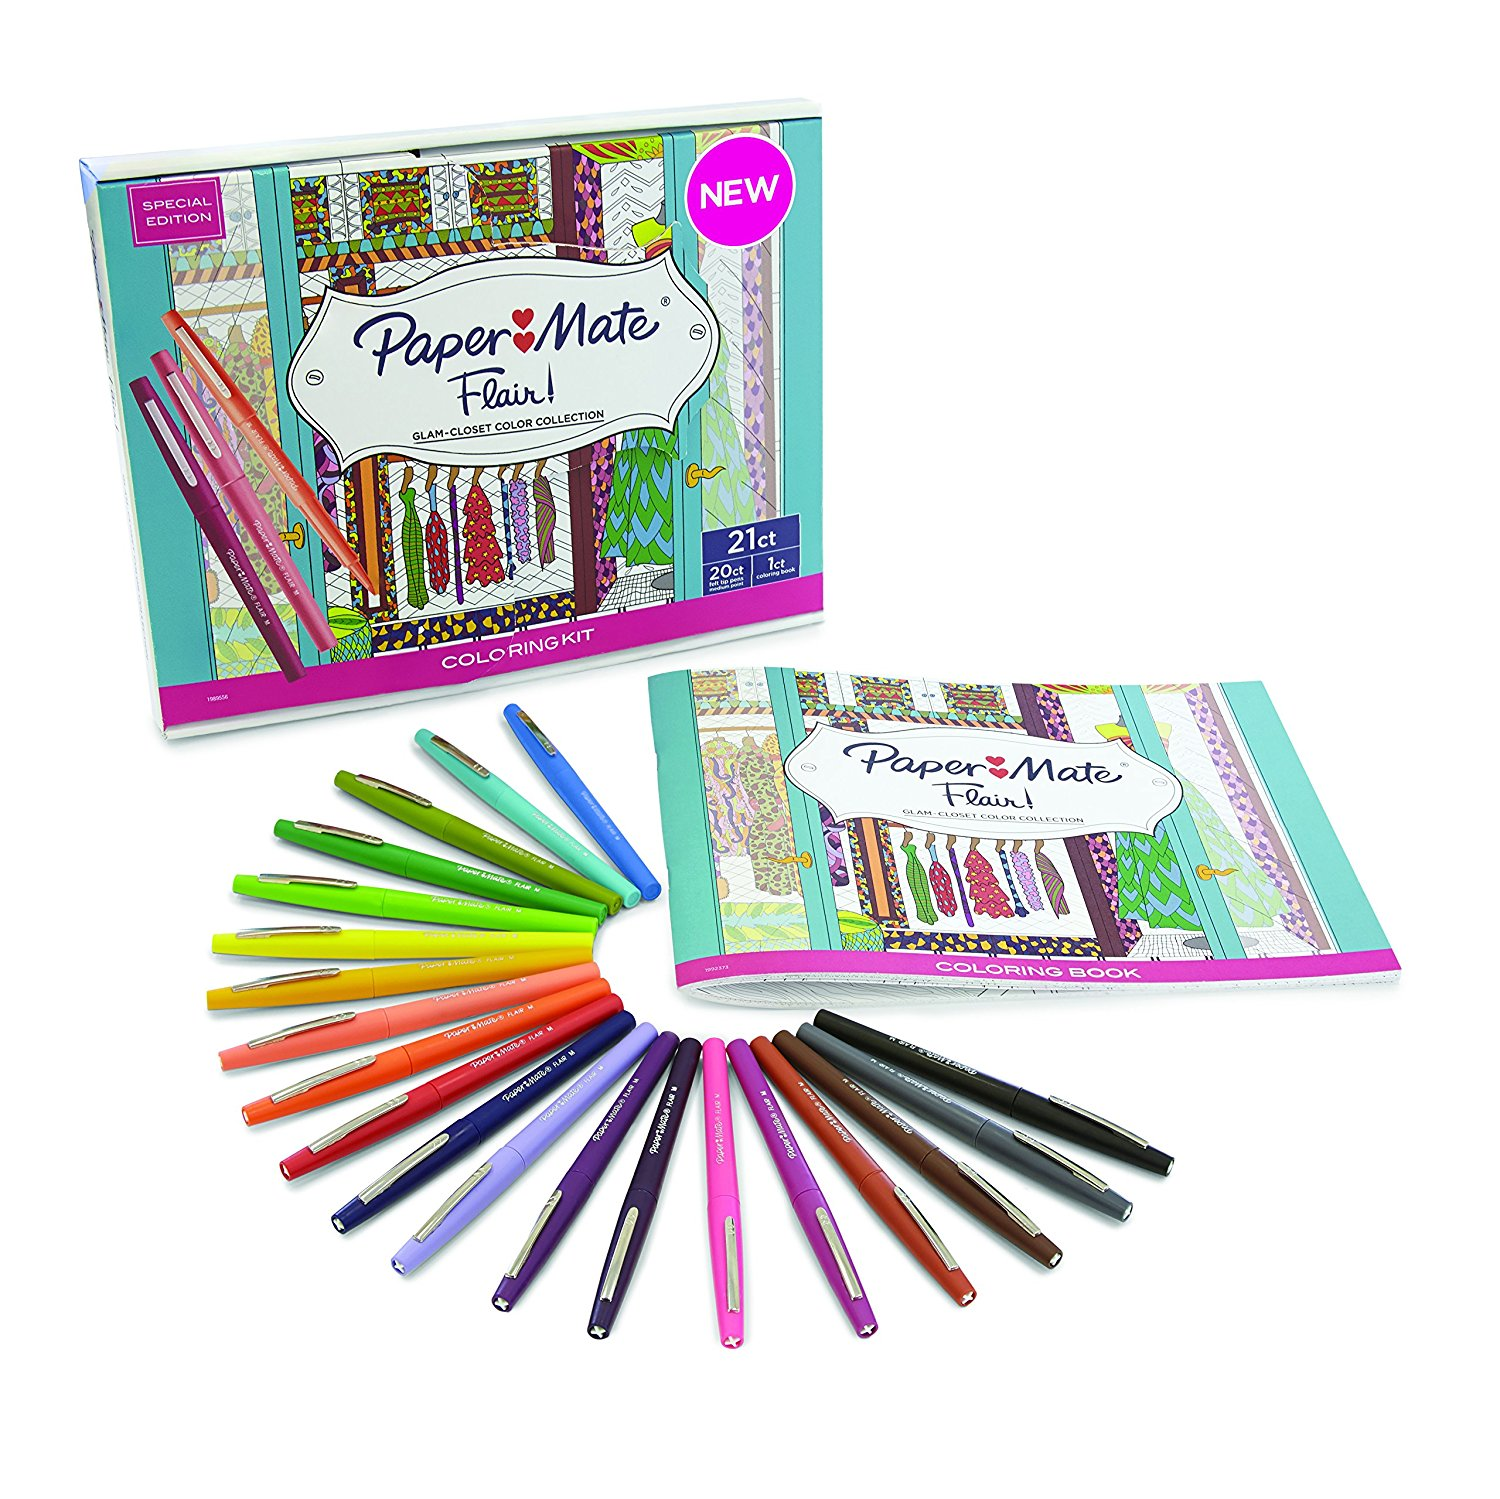 Flair Felt Tip Pens, Medium Point, Assorted Colors, 20 Count with Women's Closet Adult Coloring Book 20-Pack Coloring Kit Medium Tip